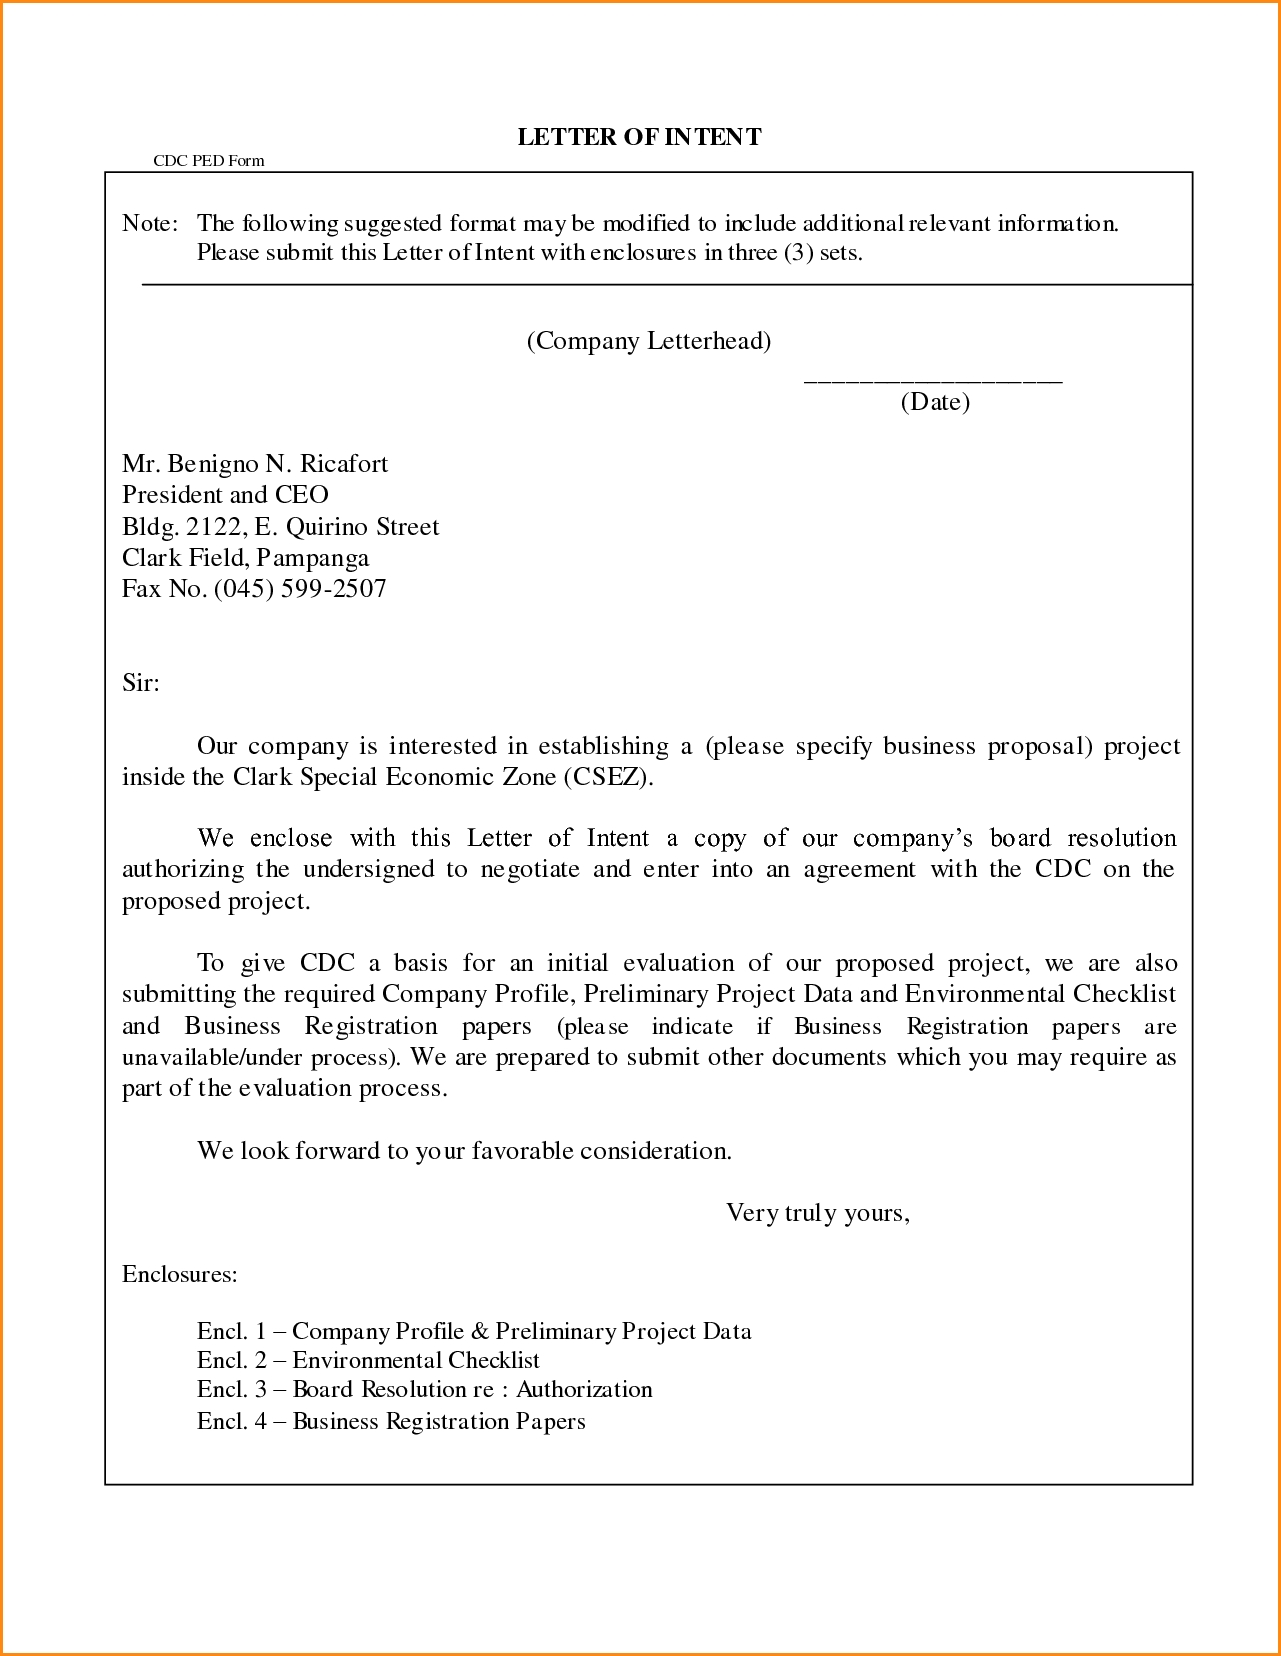 Business Letter Enclosure.business Letter Format Example With pertaining to Business Letter Format Example With Enclosure 21841